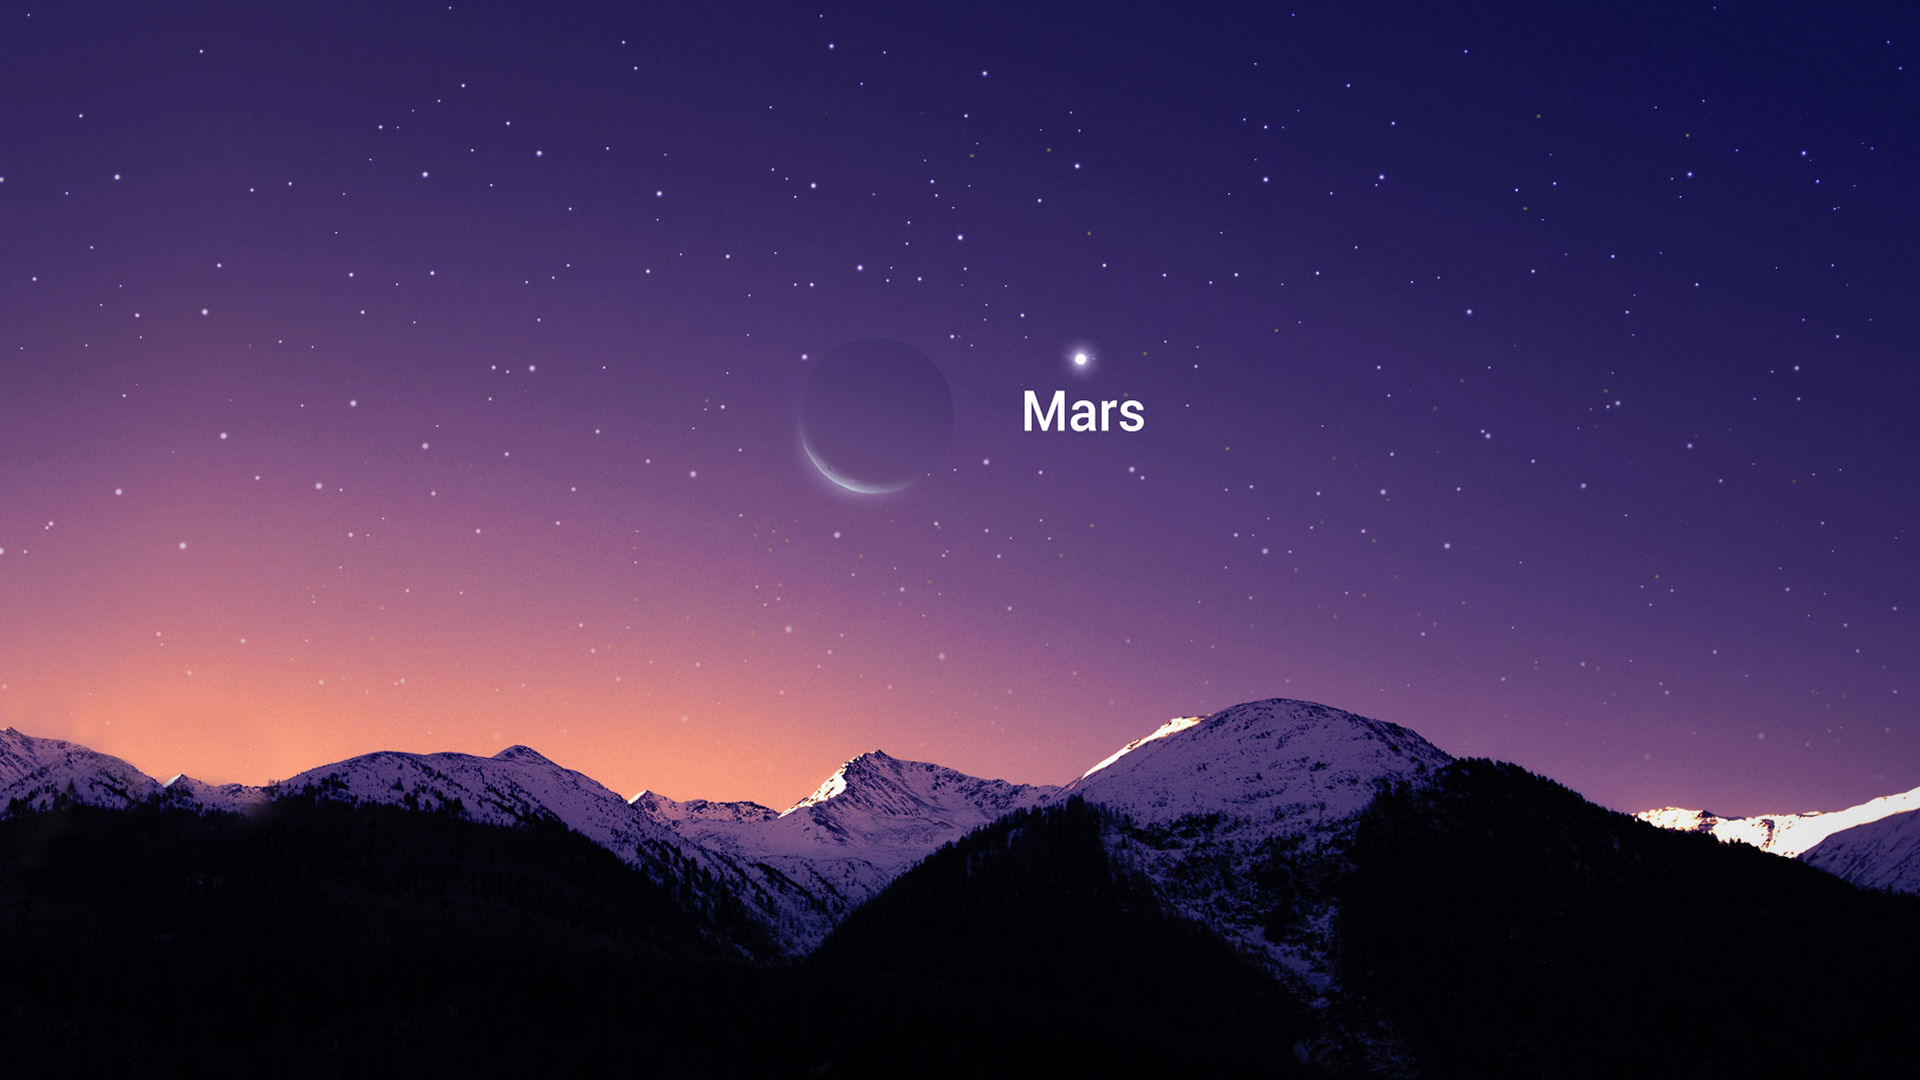 Close Approach of the Moon and Mars